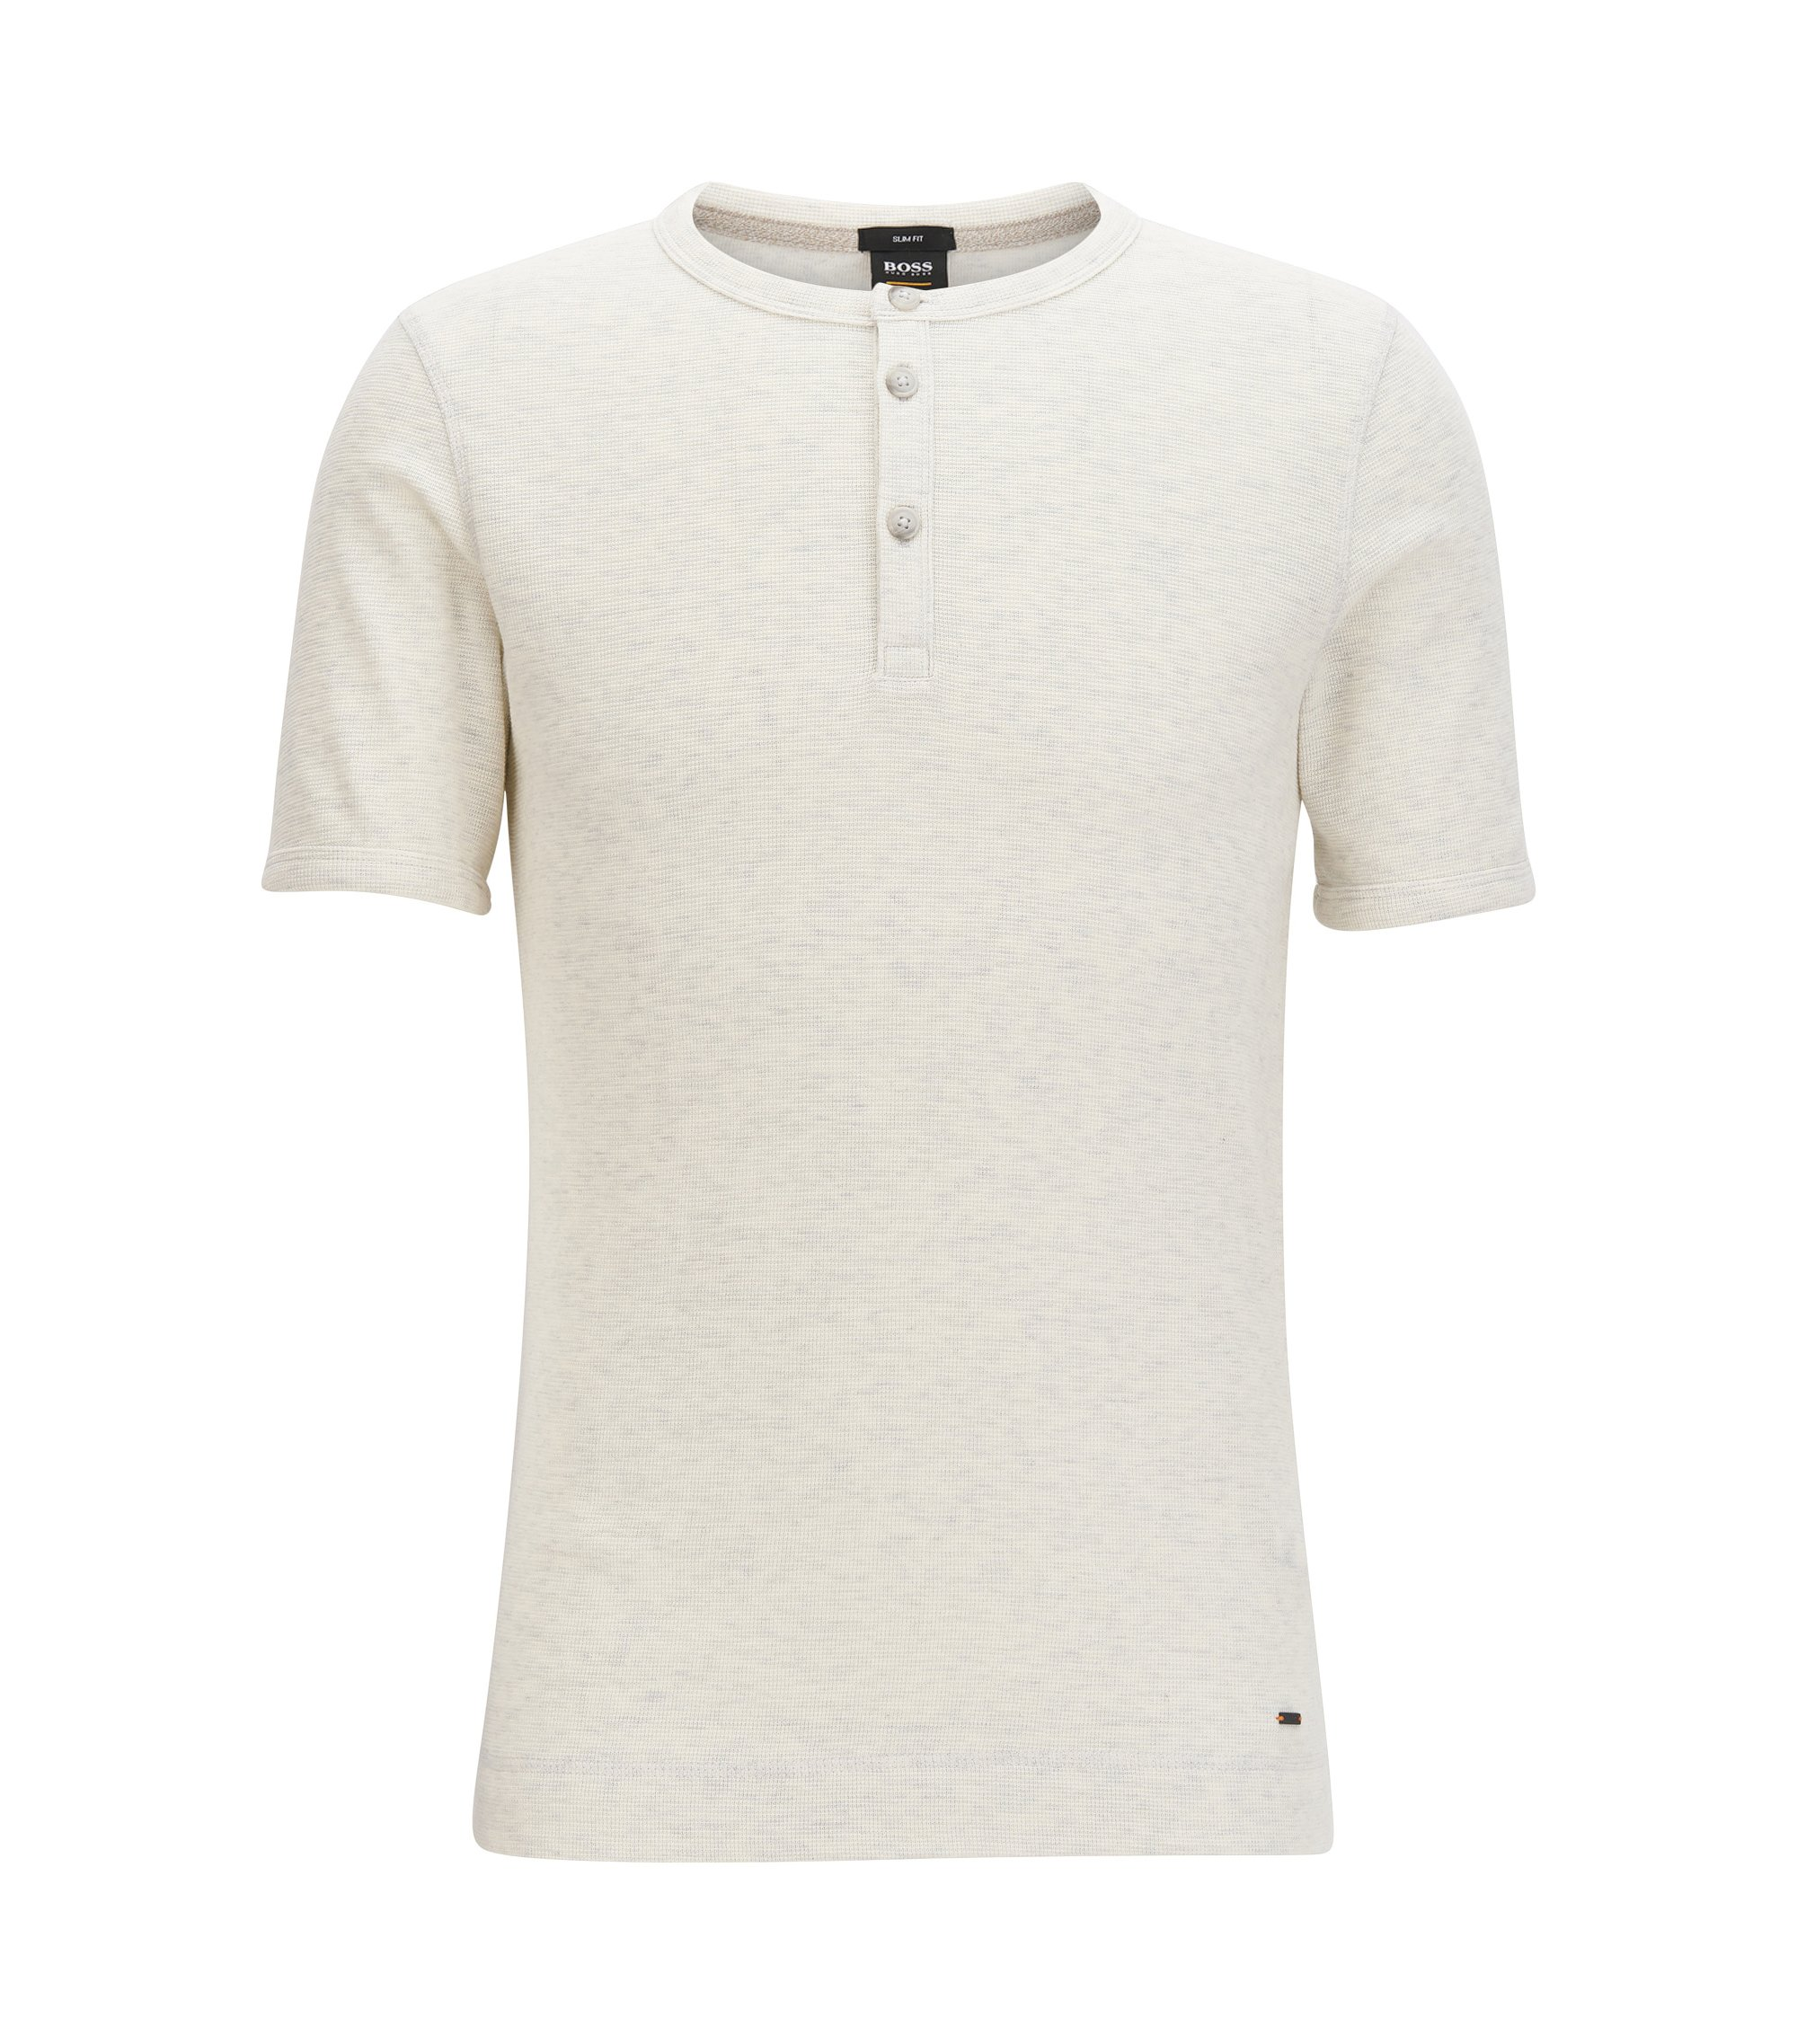 T-shirt slim fit stile Henley in cotone mélange, Naturale